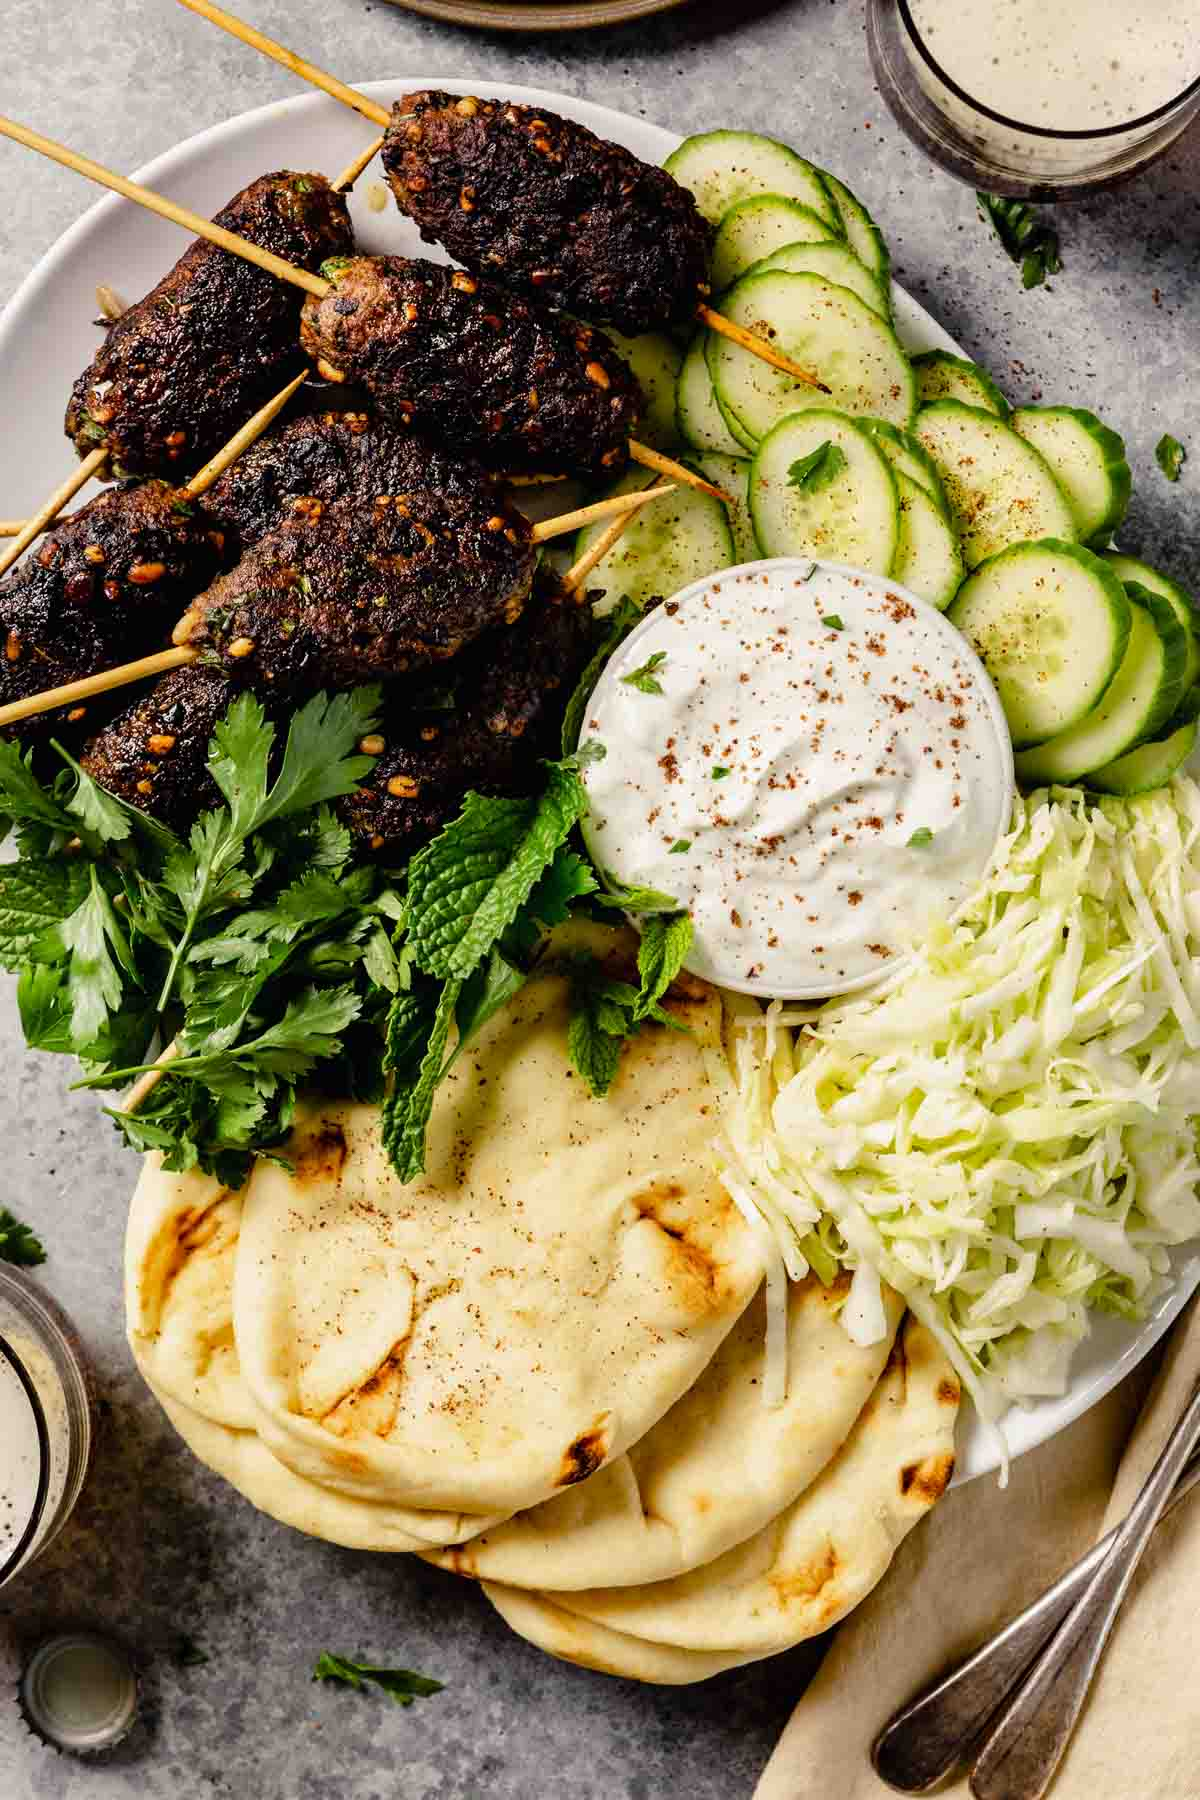 large white platter full of ground lamb skewers, shredded cabbage, sliced cucumber, herbs, and naan bread